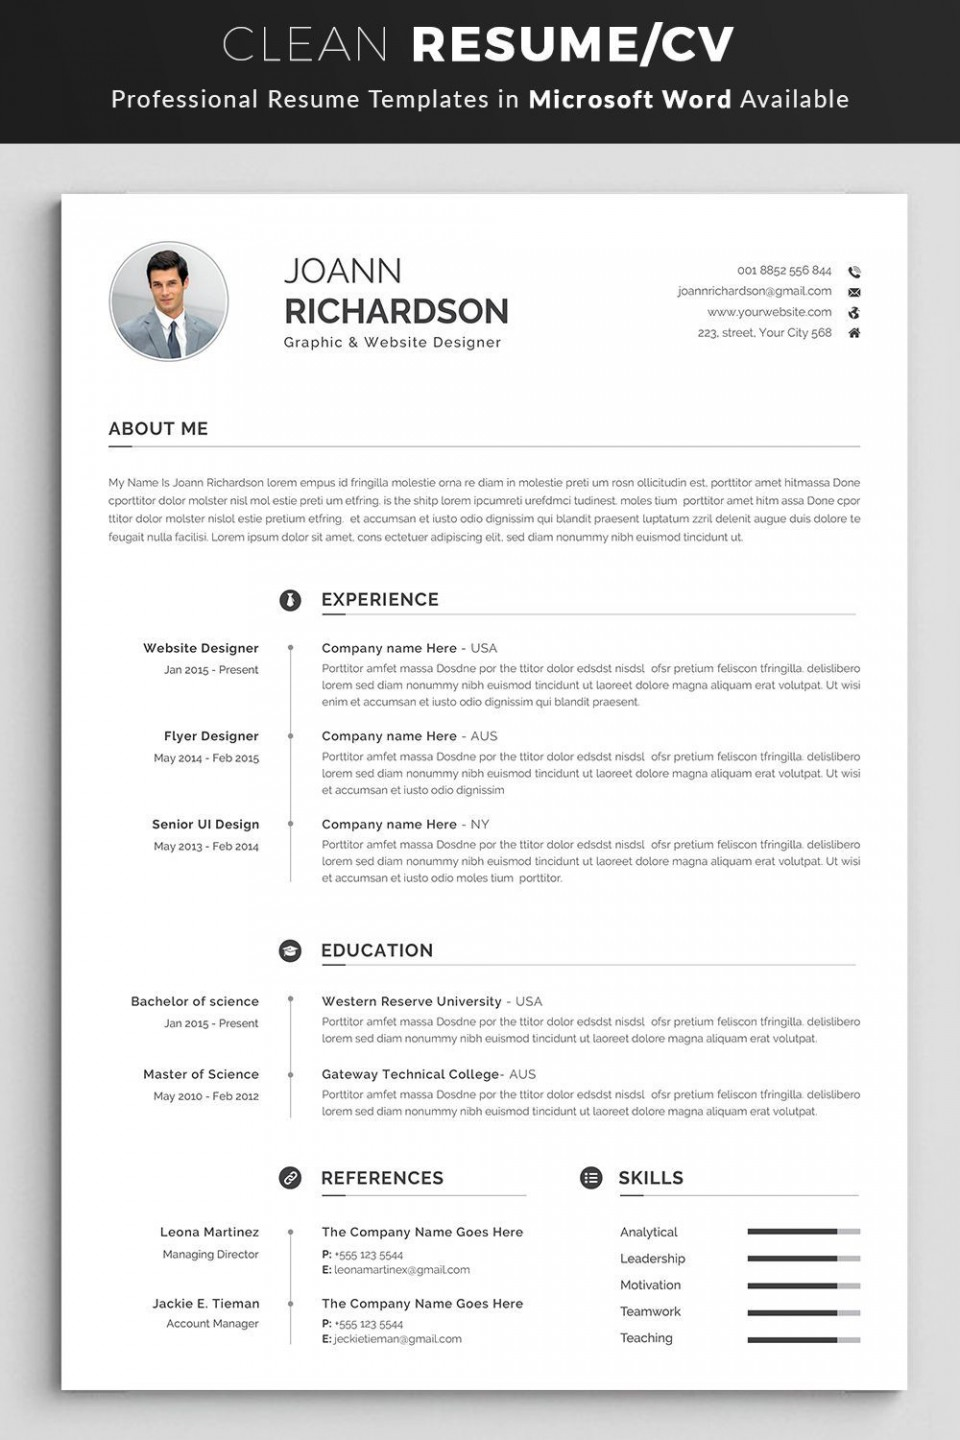 000 Excellent Make A Resume Template In Word High Def  How To Create 2010 2013960